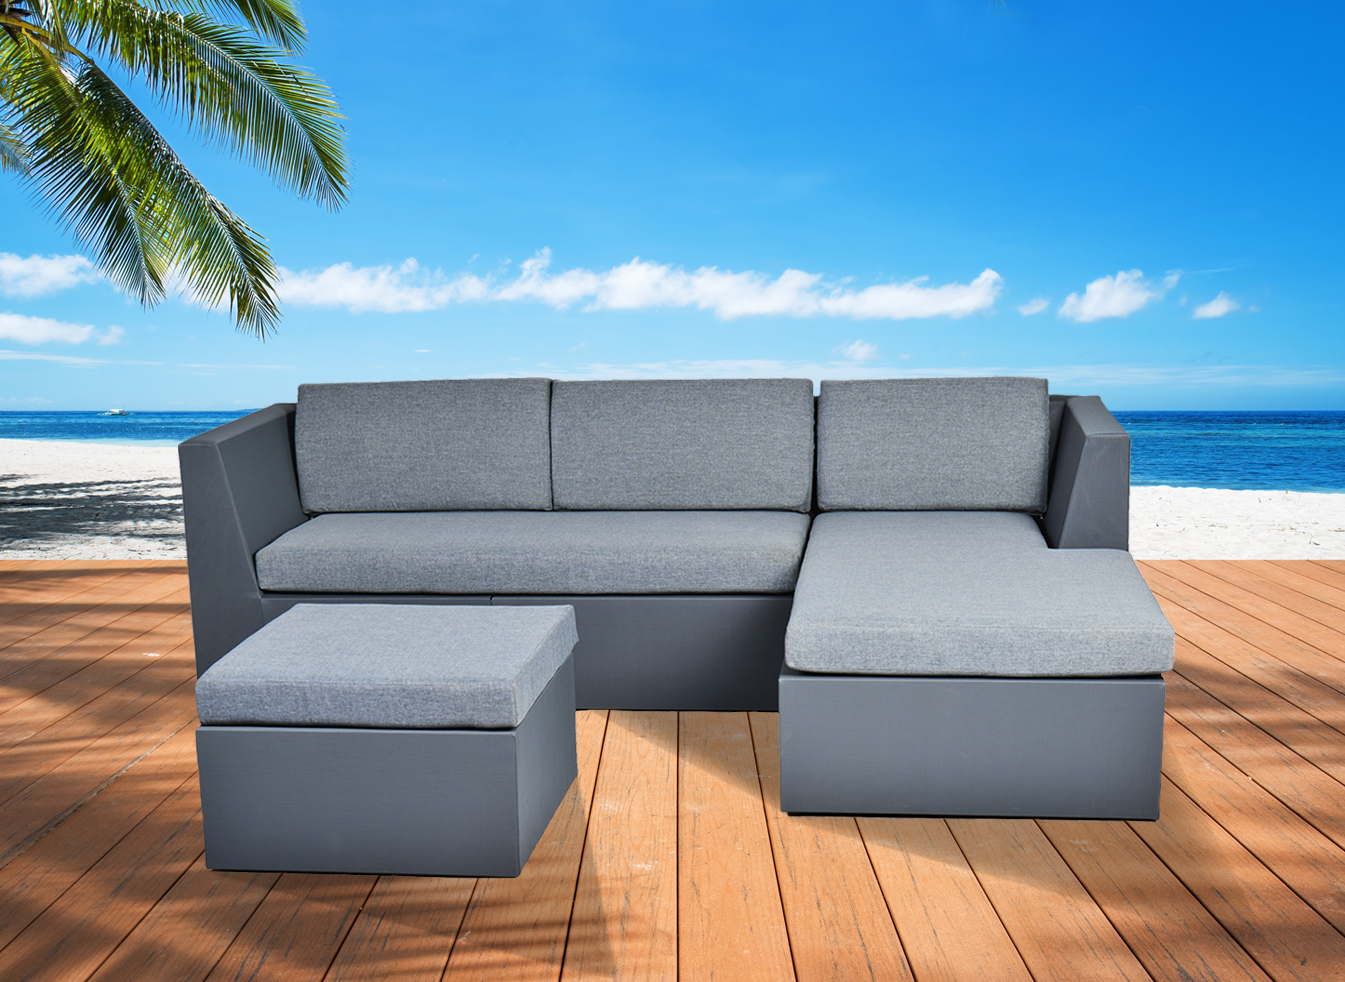 Outdoor Sectional Sofa In Dark Grey Fabric